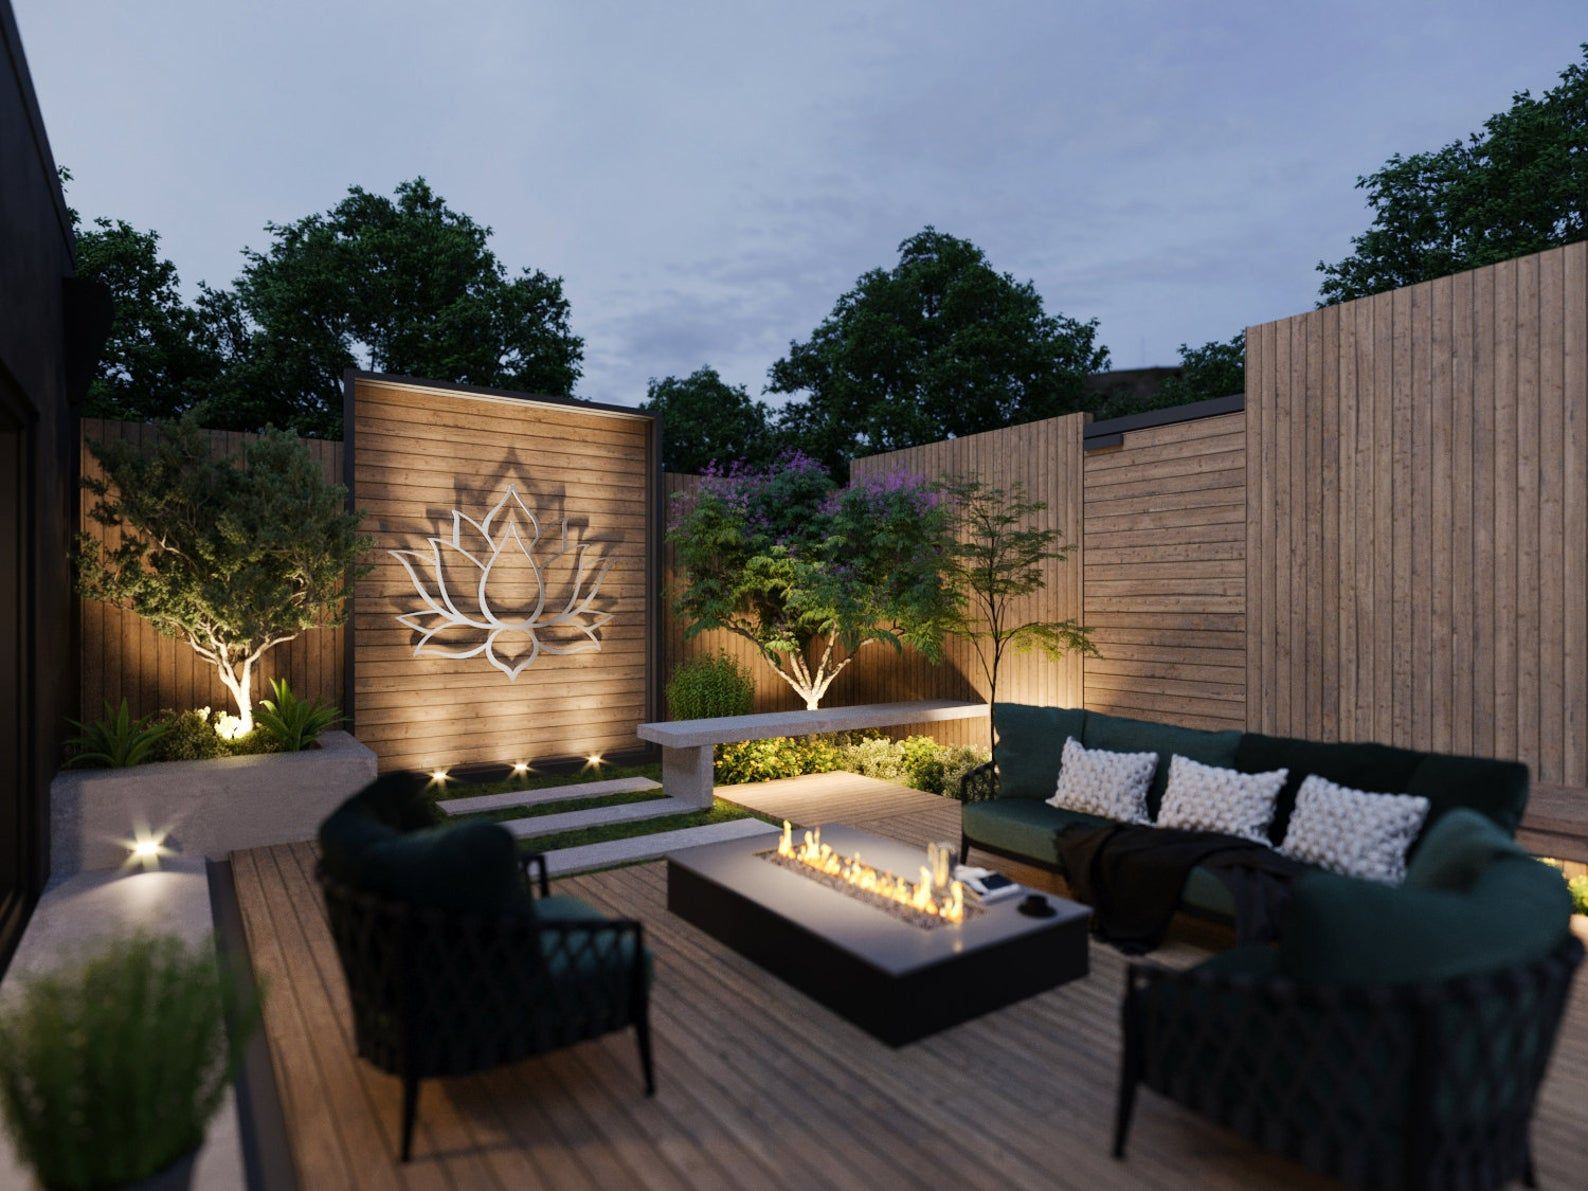 Pin on Outdoor Design